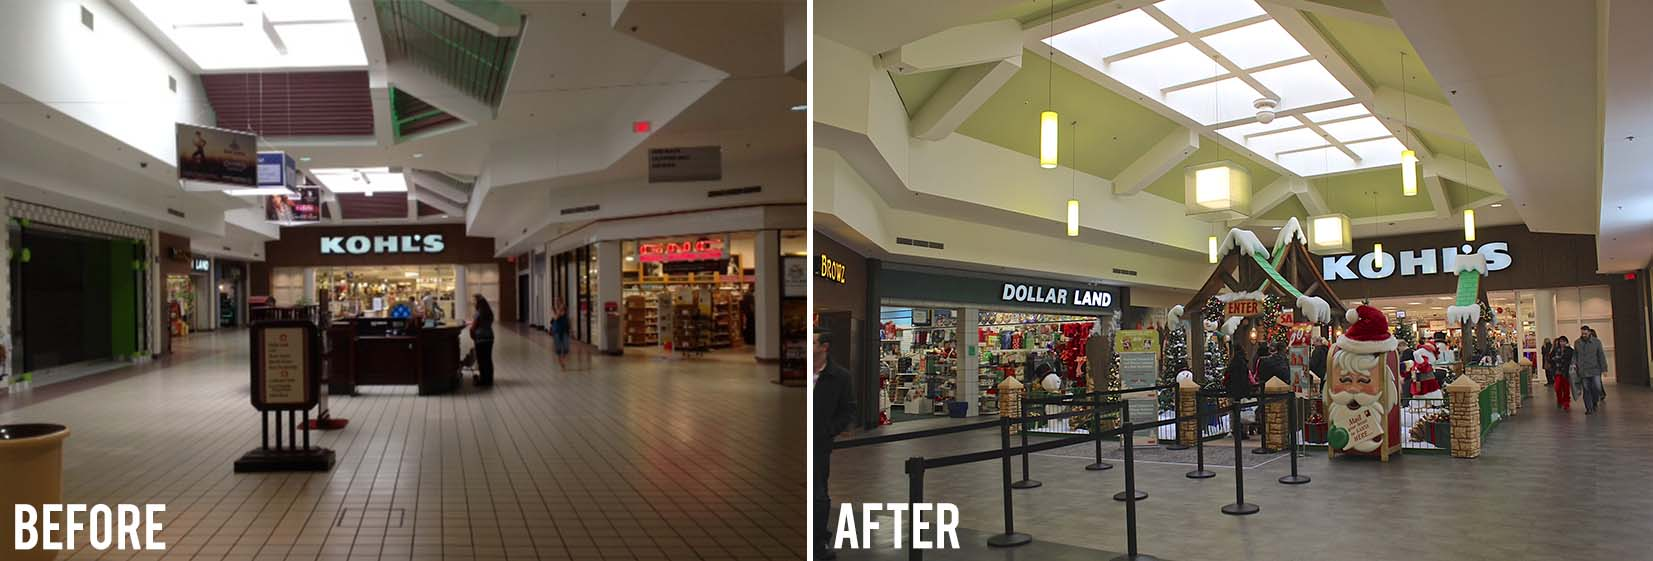 Before and After- Kohls